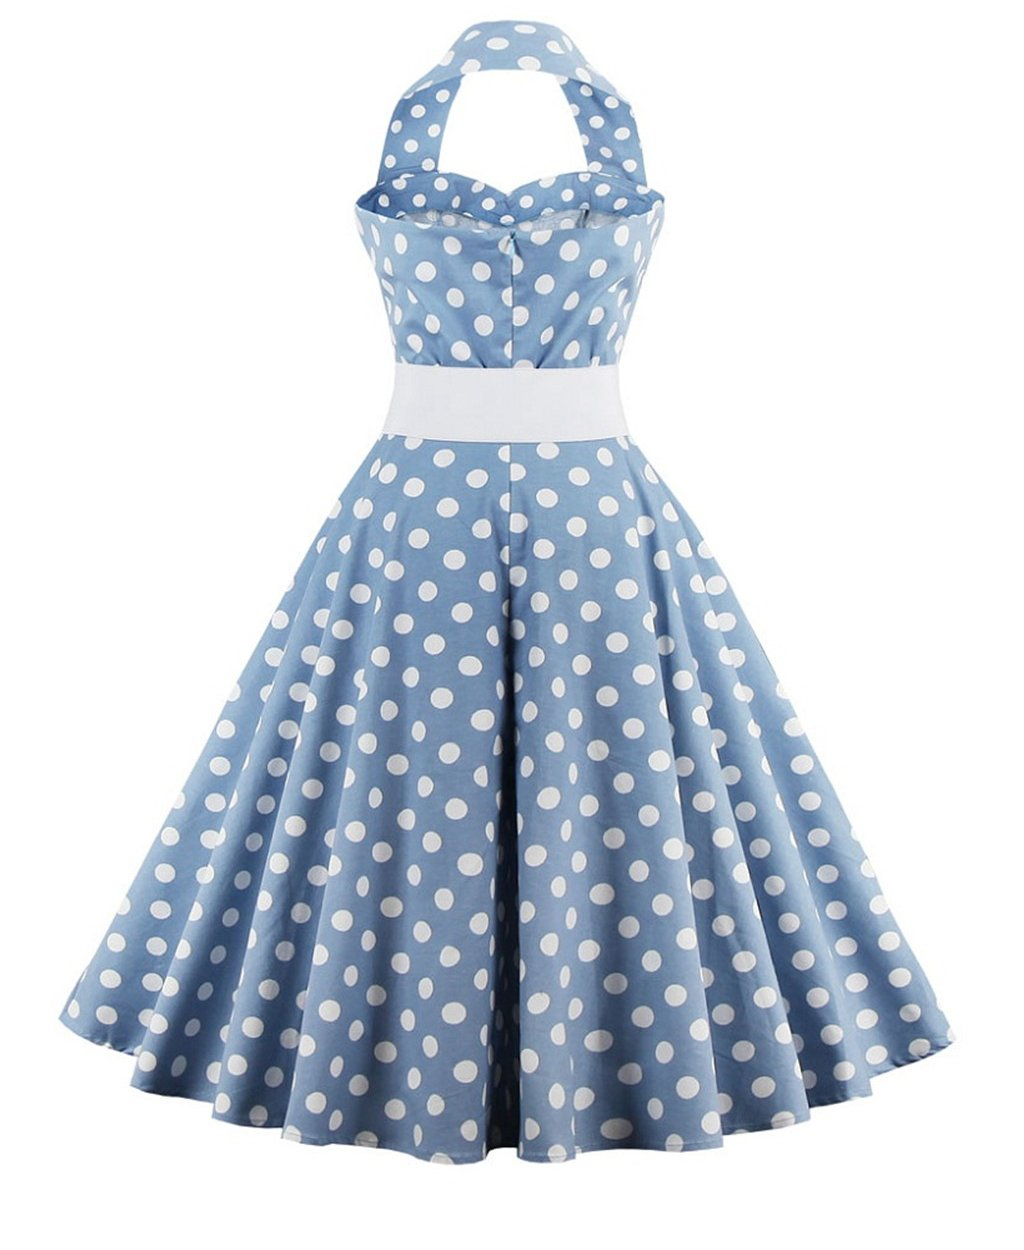 ZAFUL Women's 50s Vintage Polka Dots Halter Swing Dress Party Gown with Belt 1